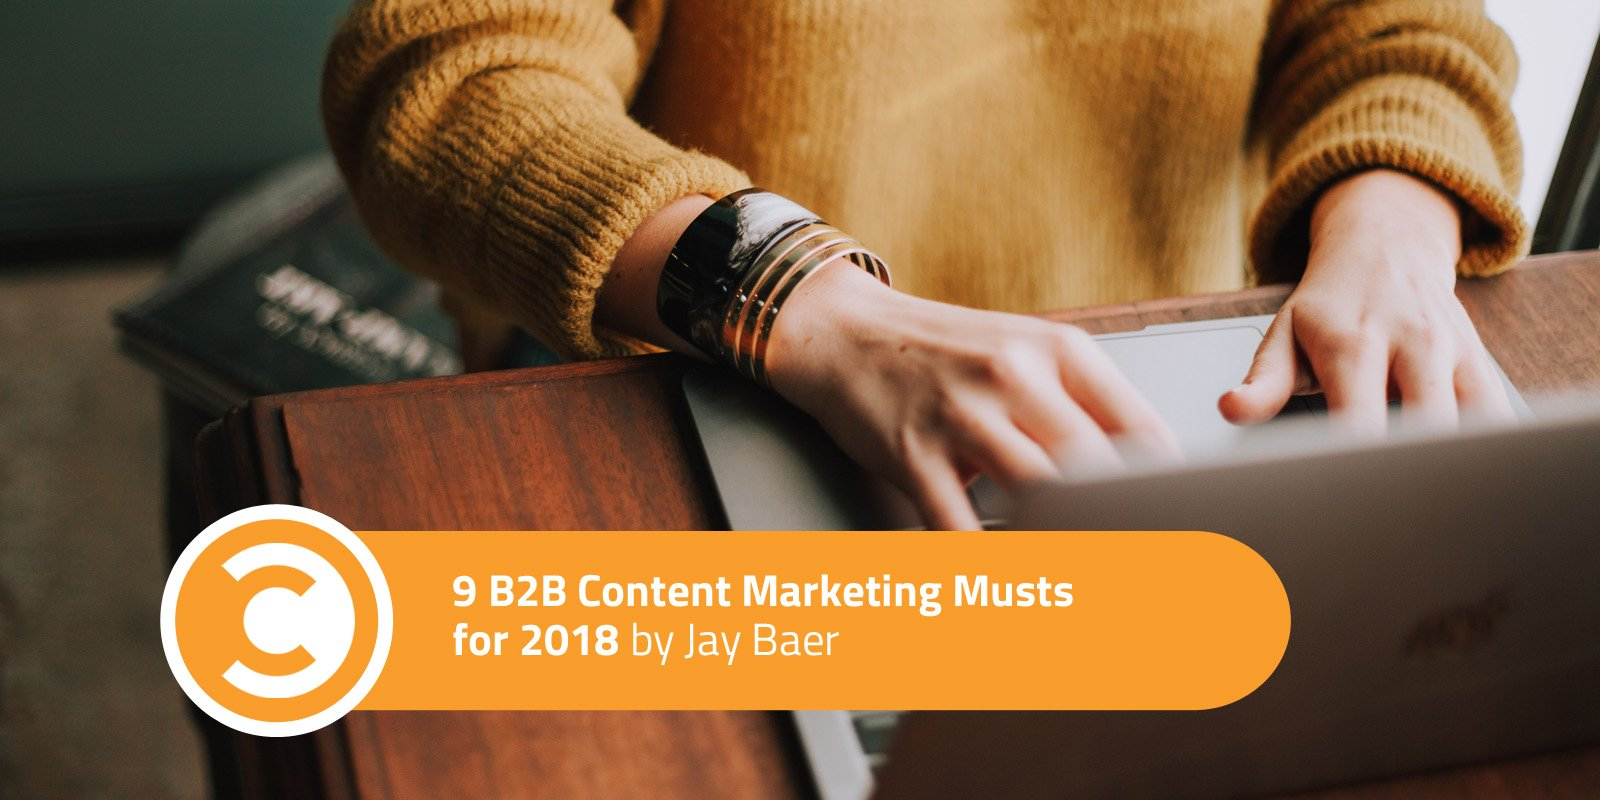 9 B2B Content Marketing Musts for 2018